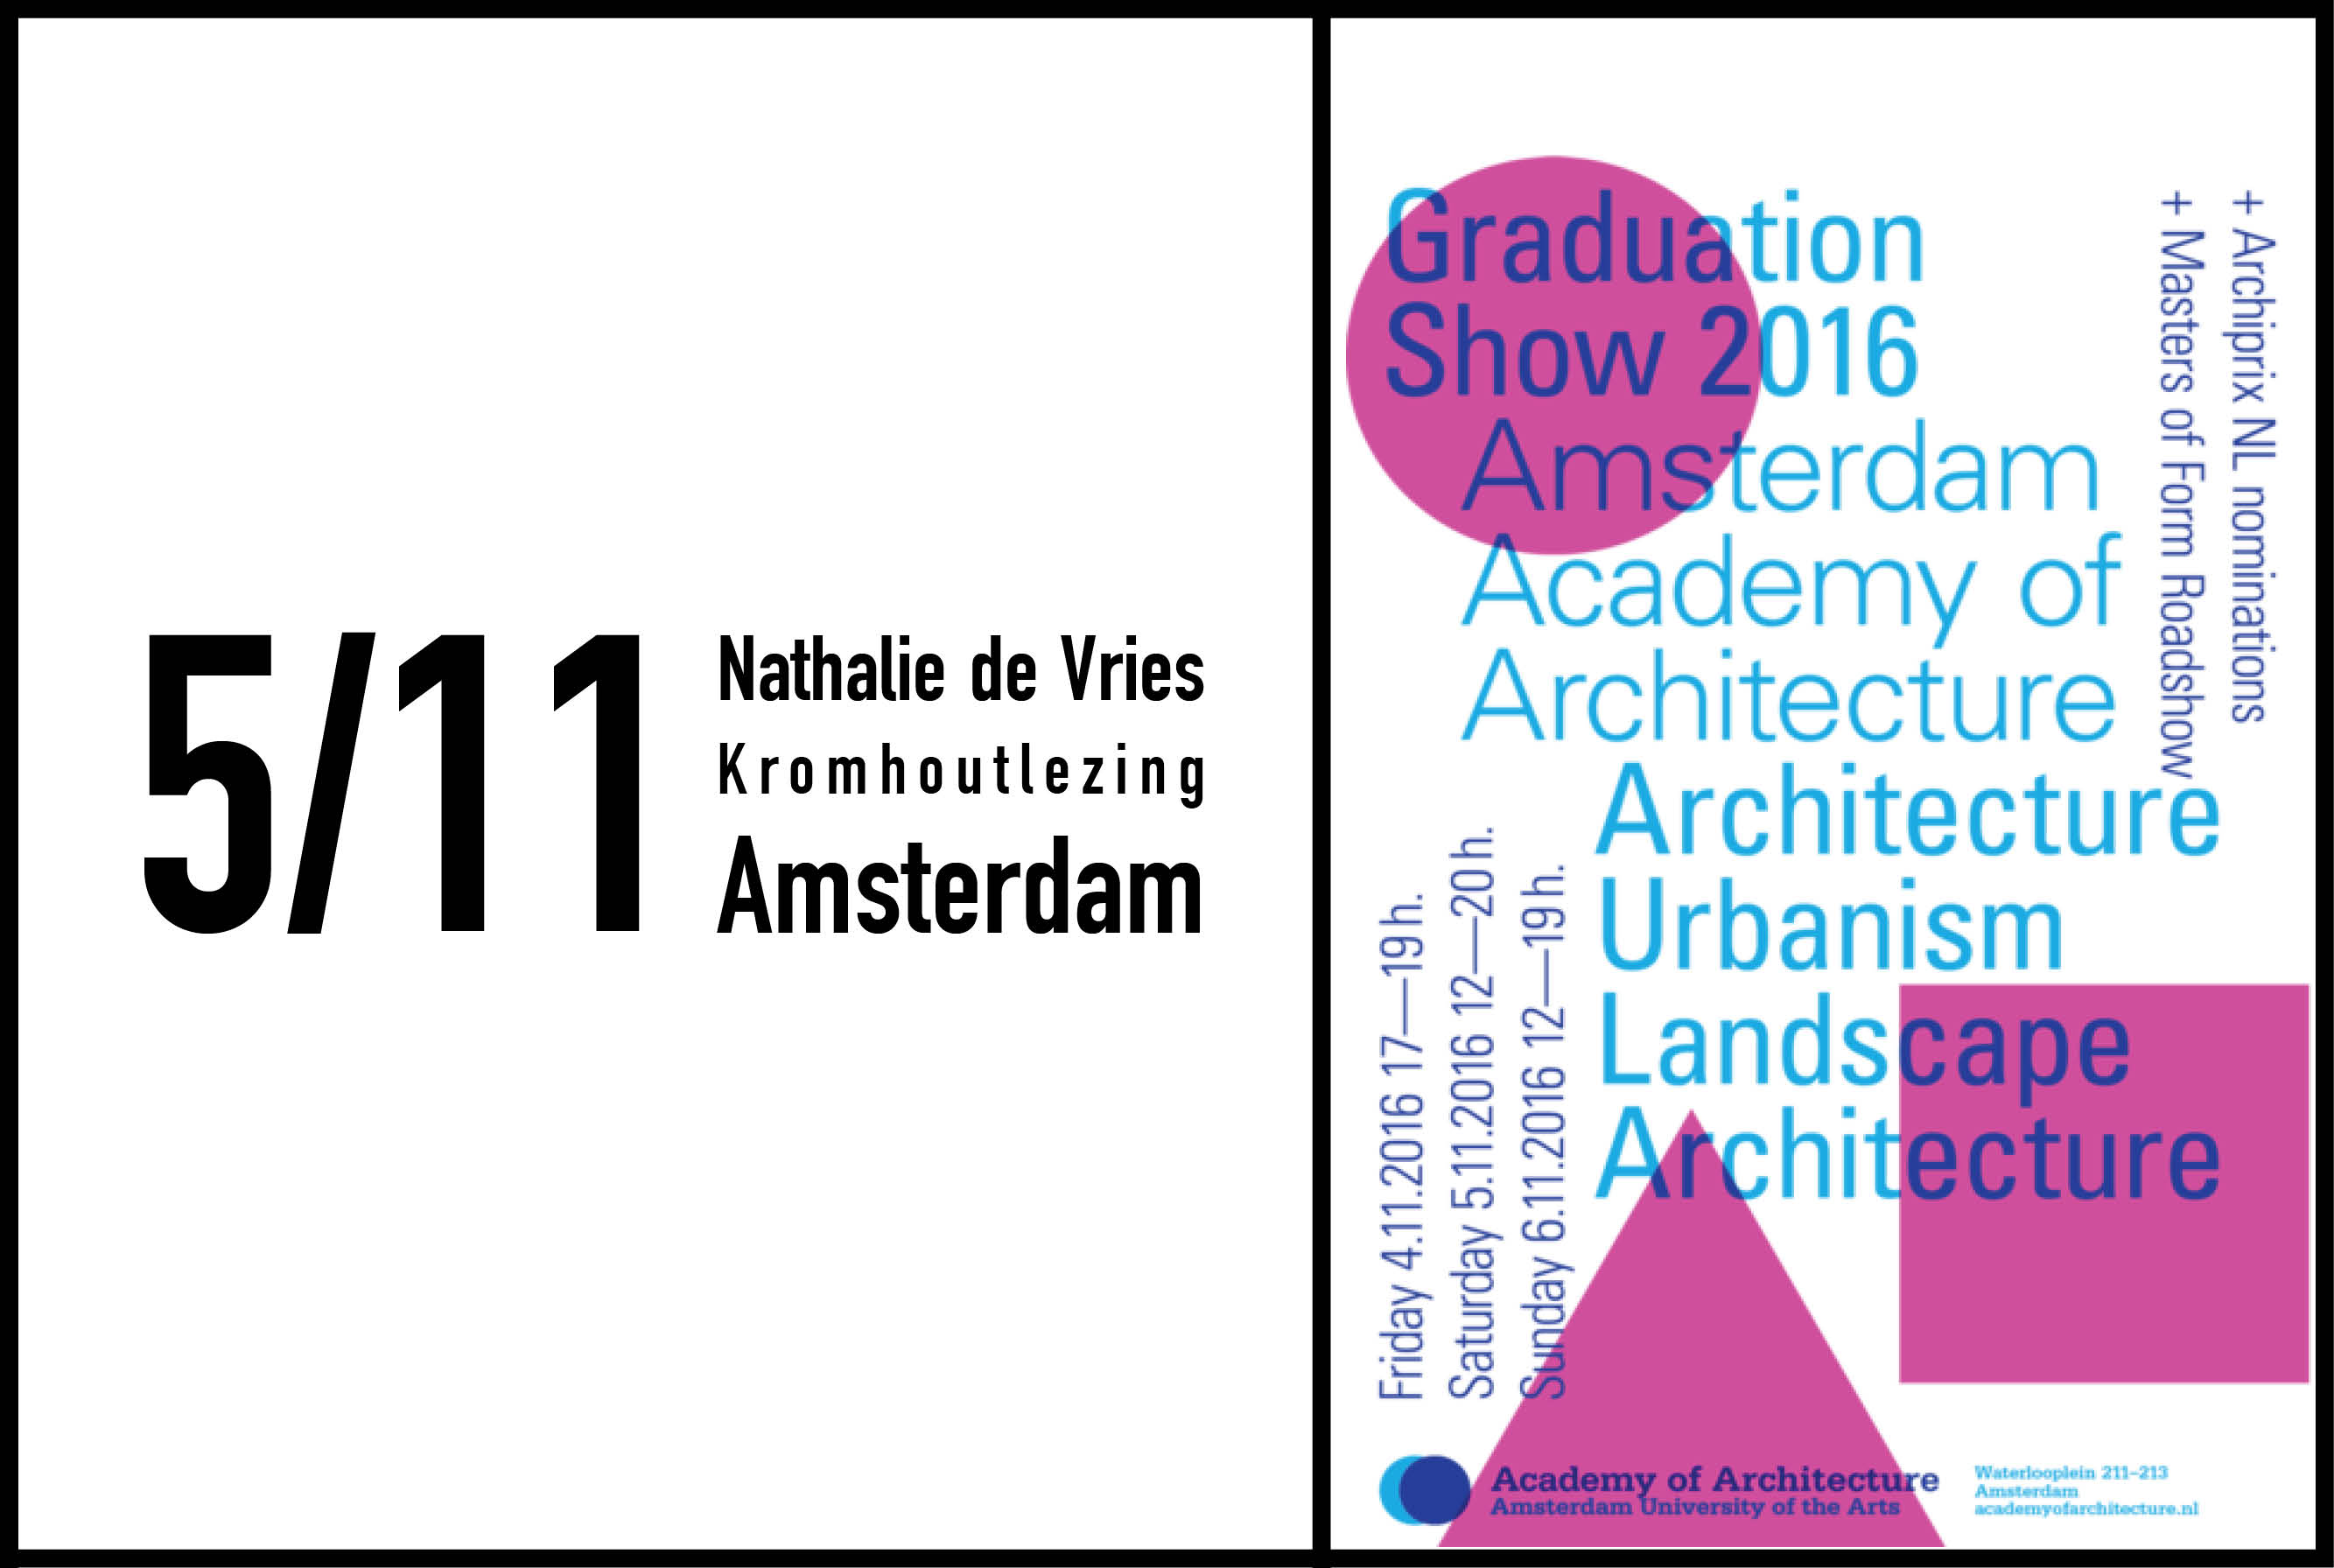 Nathalie de Vries to give Kromhout lecture at the  Academy of Architecture in Amsterdam, 5th November 2016